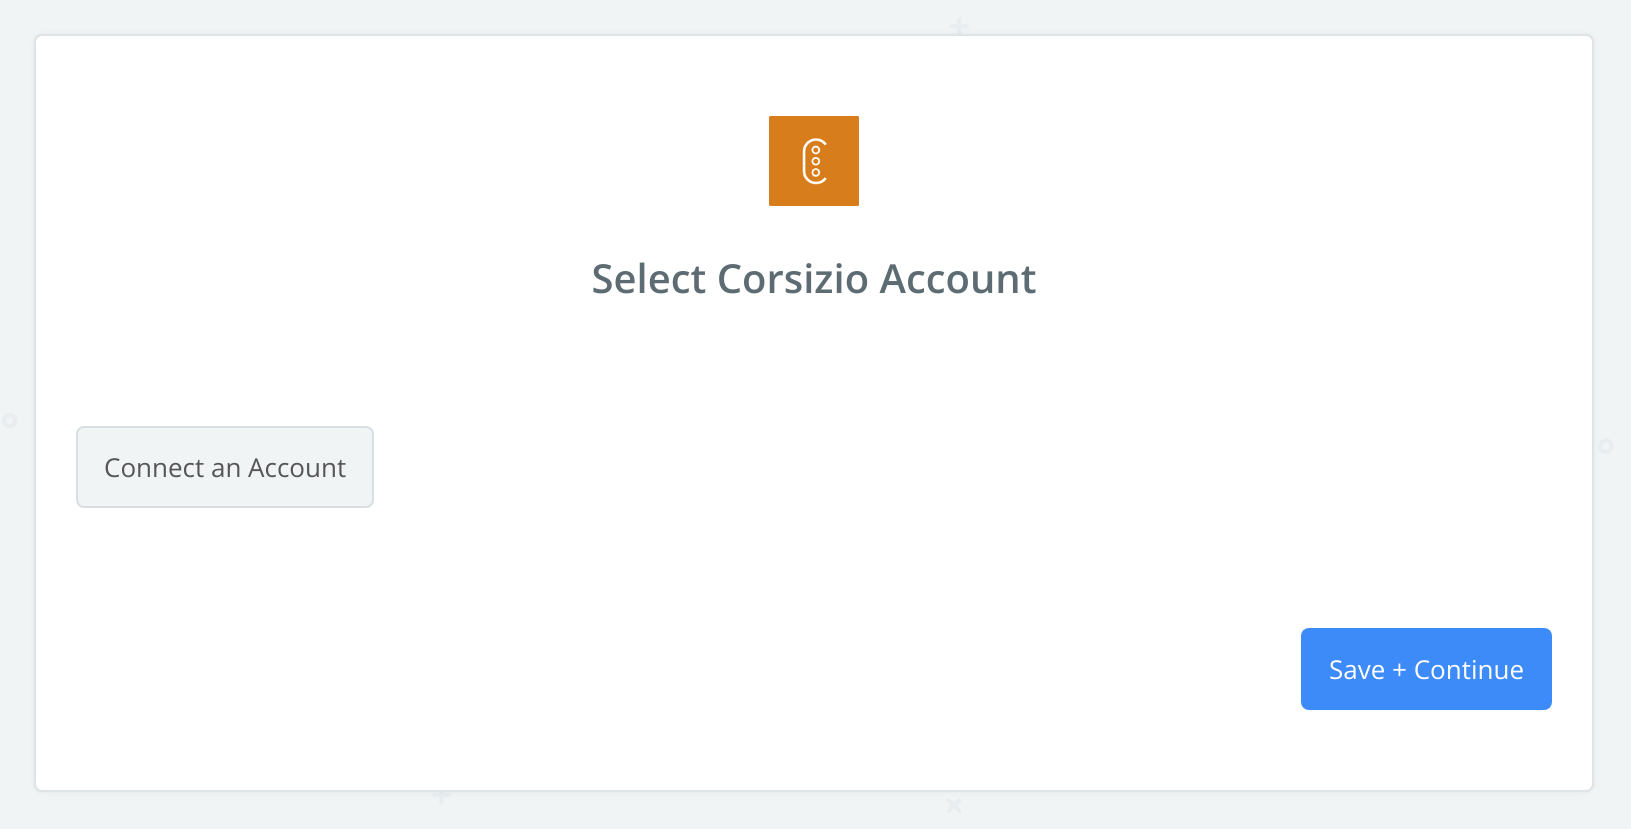 Click to connect Corsizio